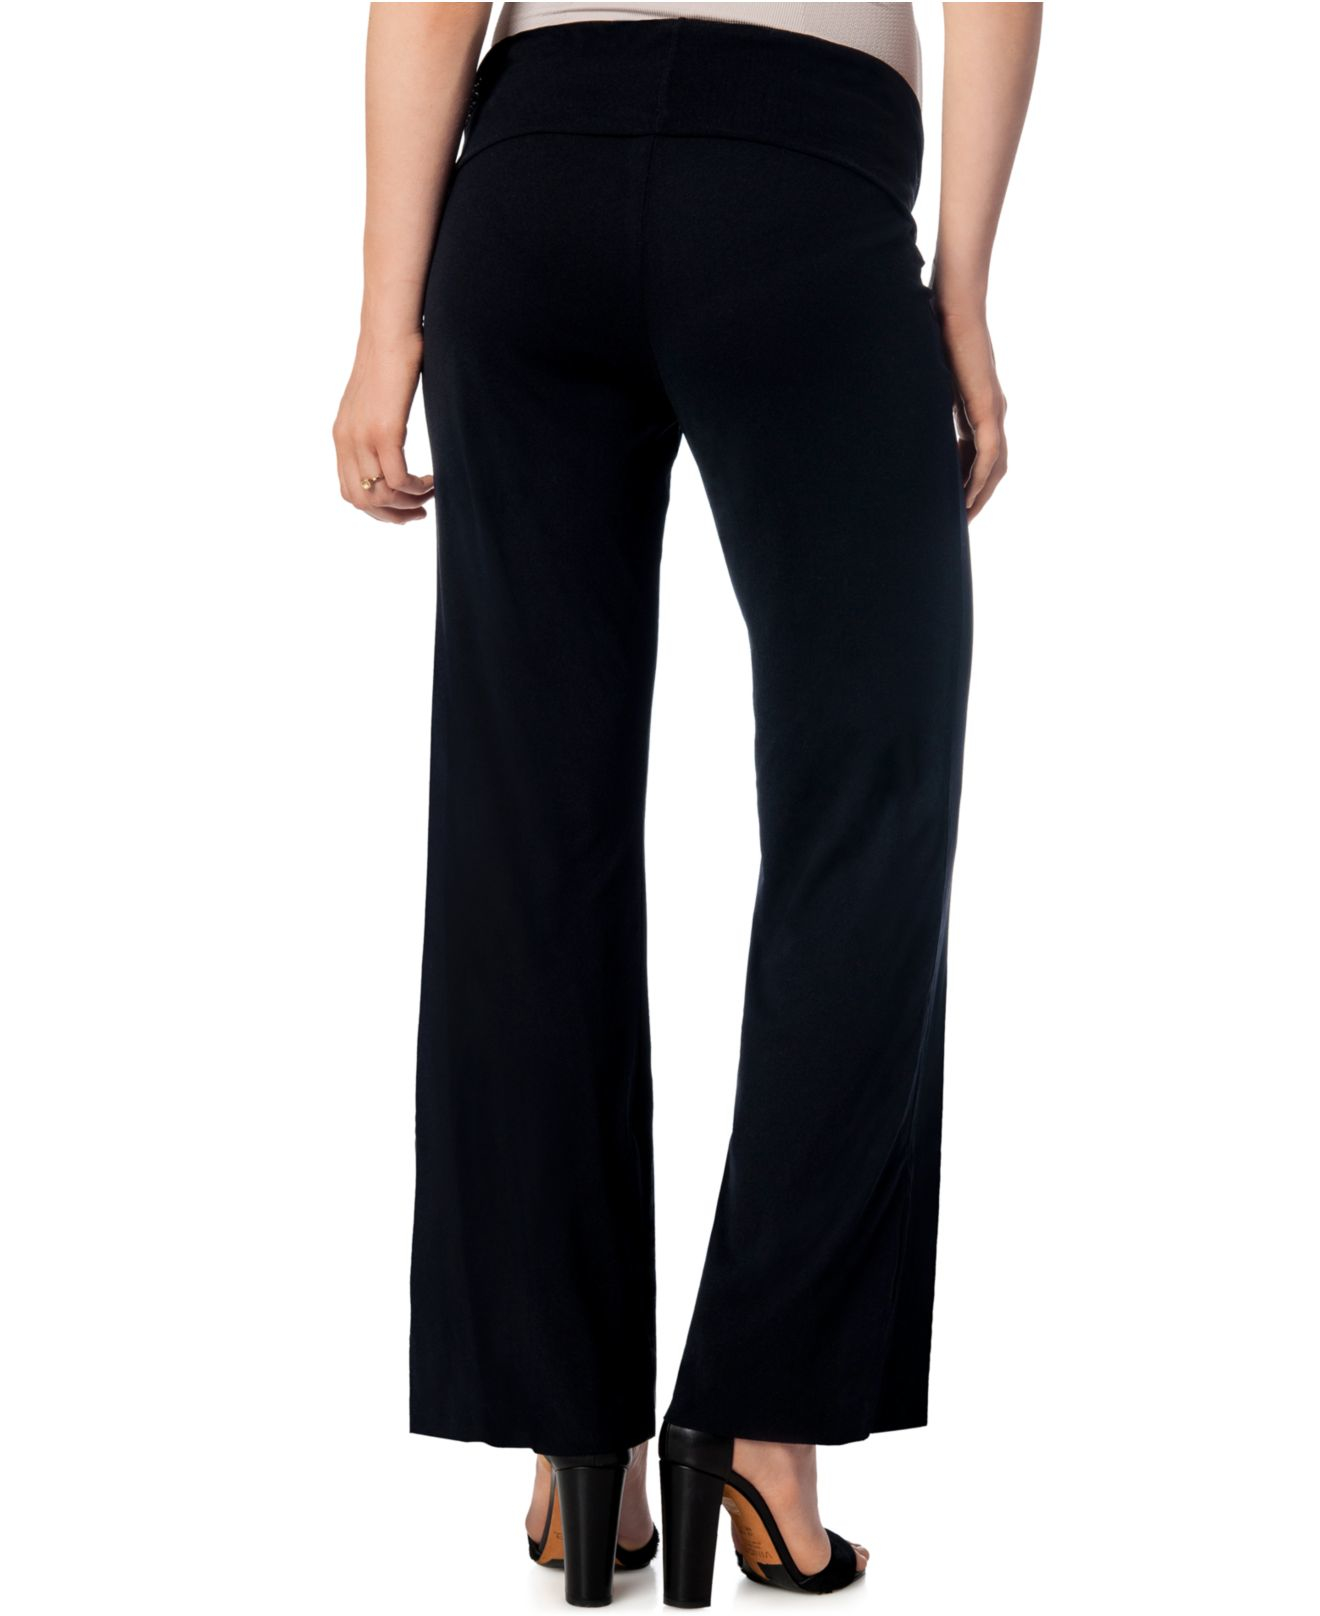 Motherhood Maternity's pants boast a wide-leg silhouette and the seamless support of a patented Secret Fit Belly. Maternity pants; Secret Fit Belly® waistband can be folded down on worn over the belly for additional support.